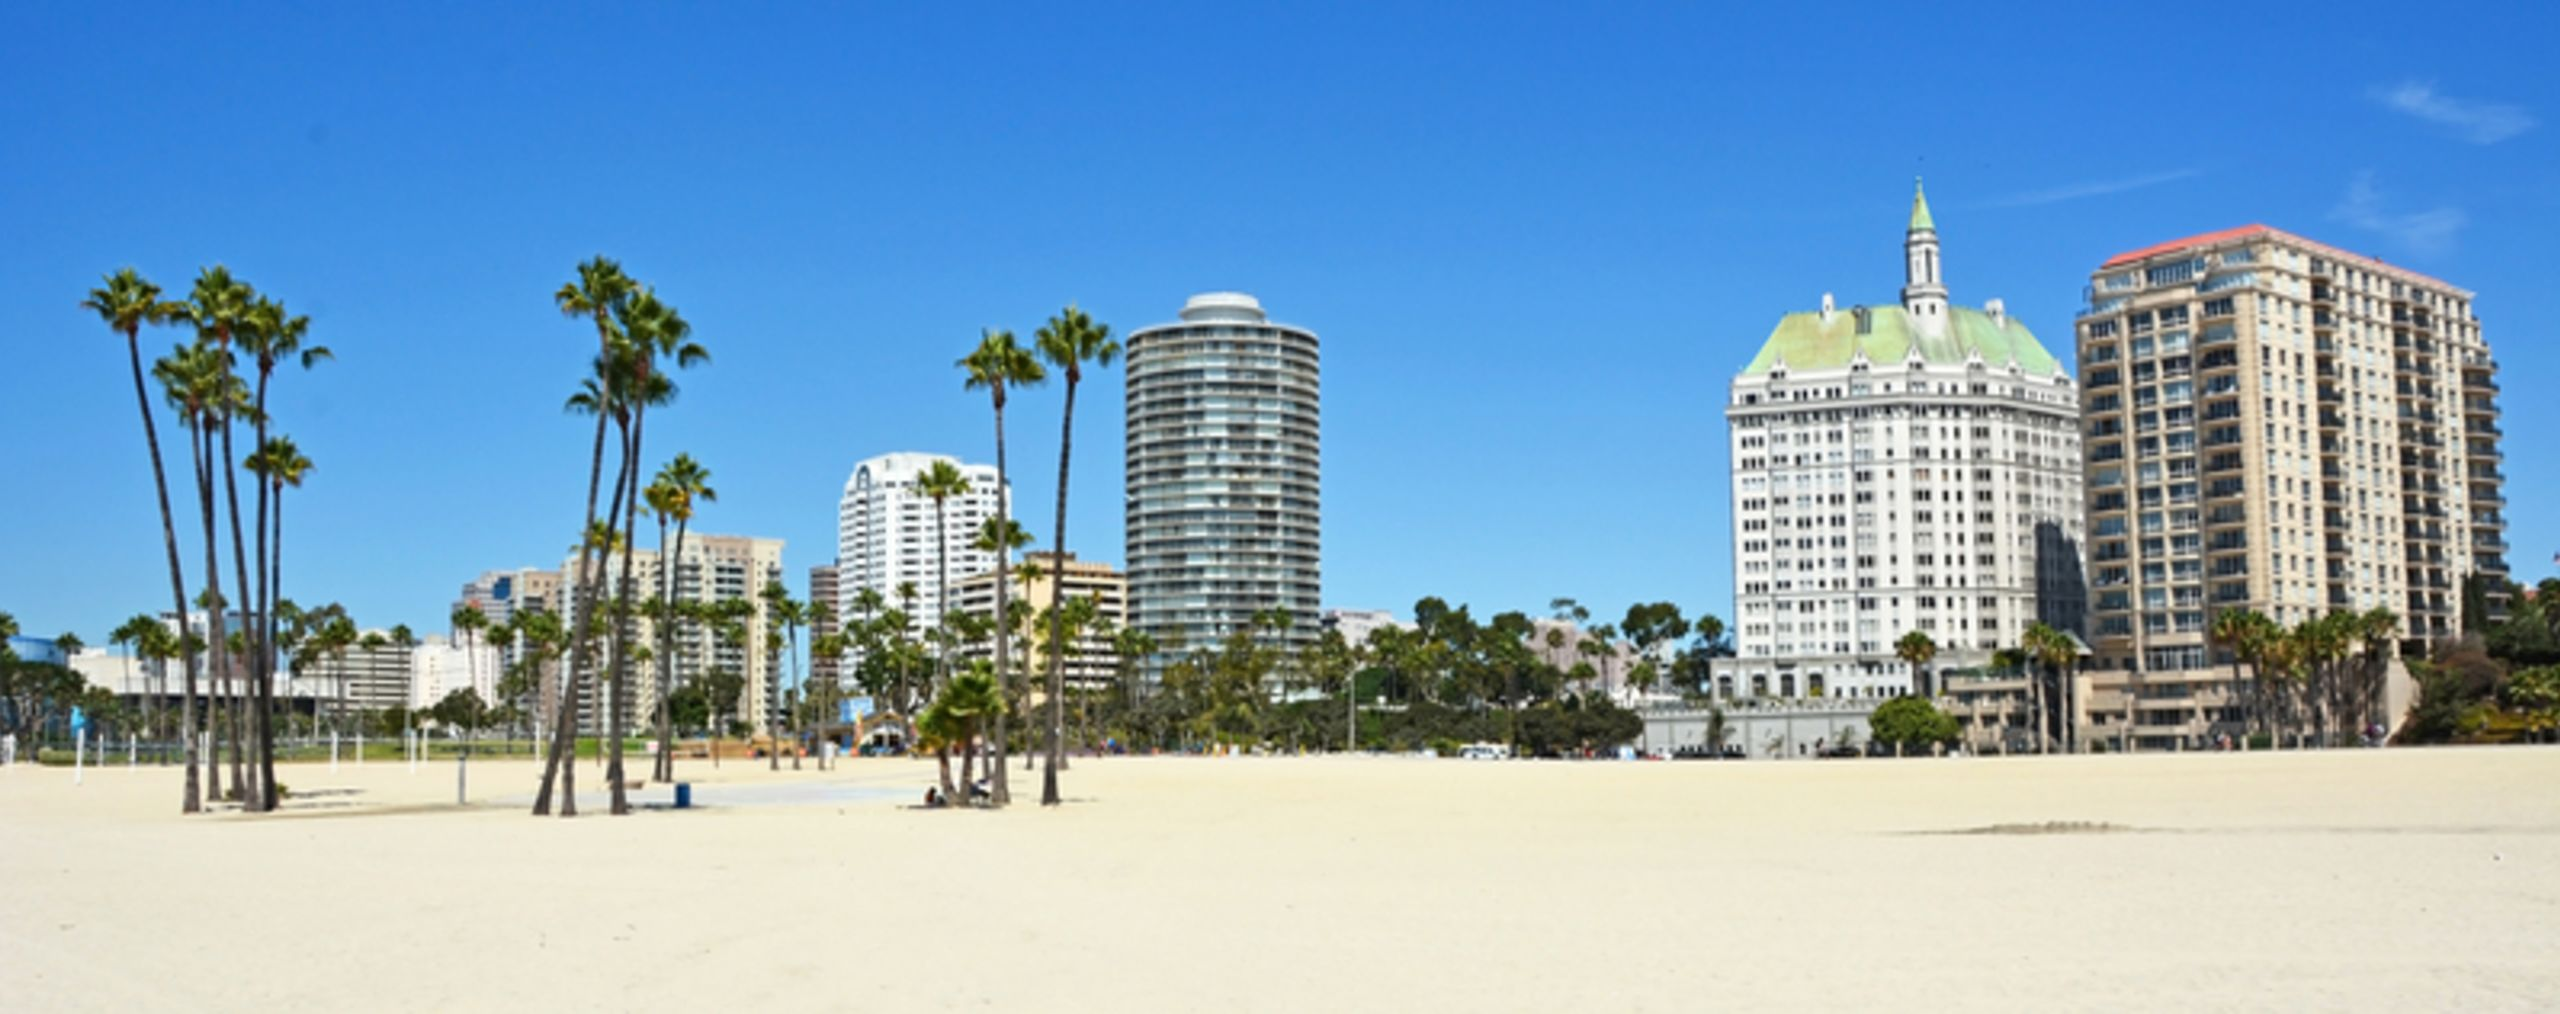 Condos along the beach by Dreamstime.